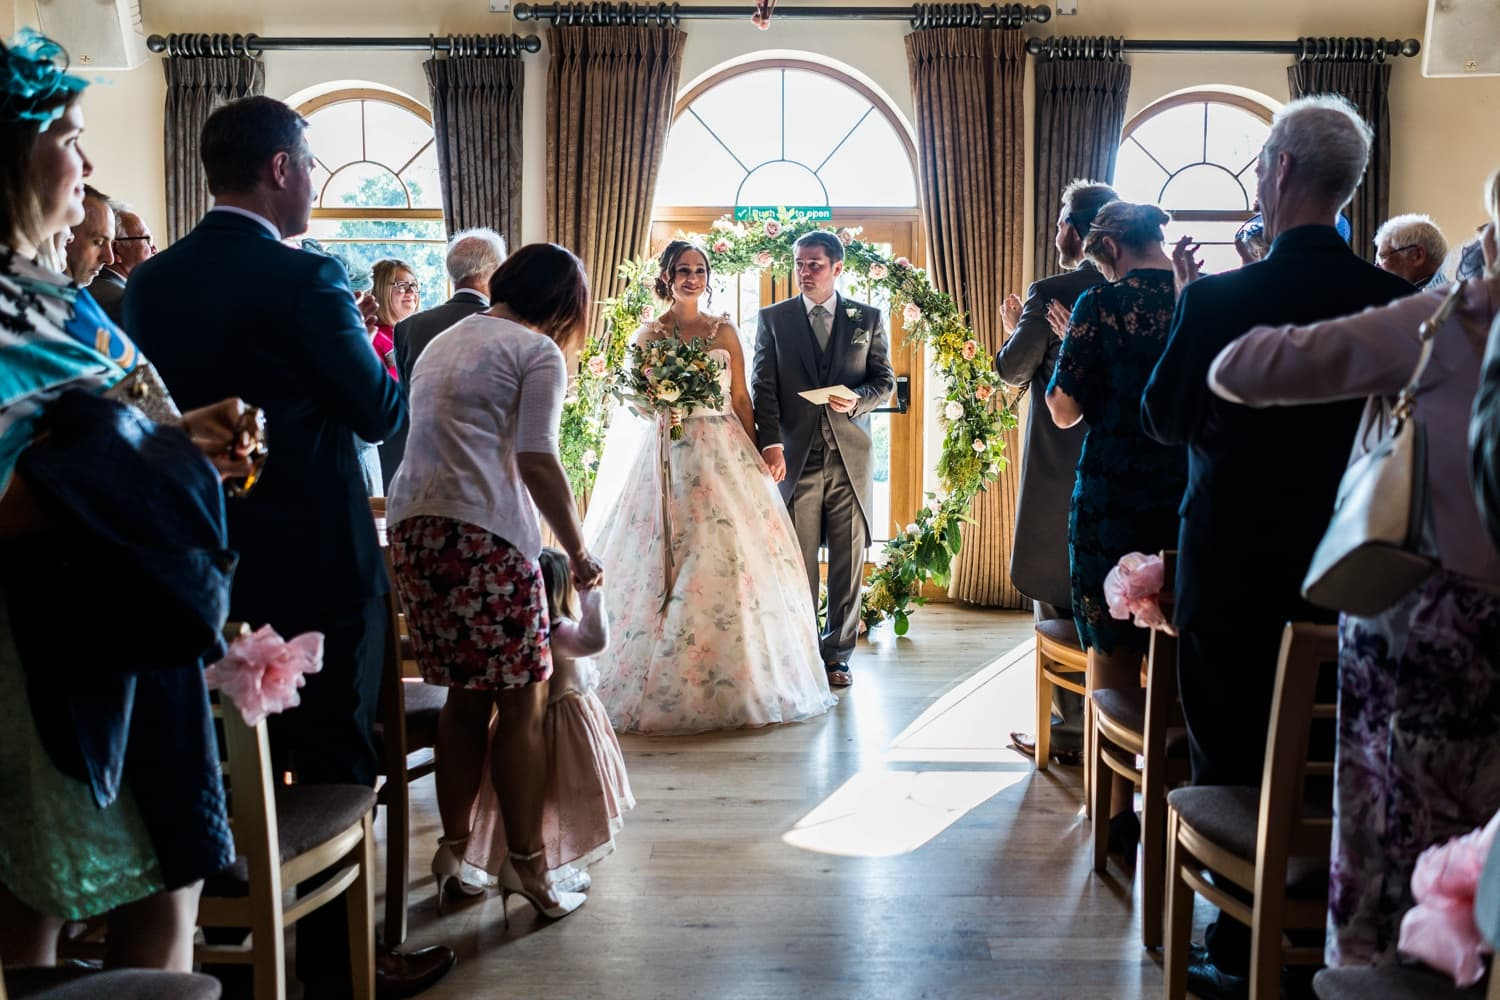 Marriage ceremony at King Arthur Hotel in South Wales